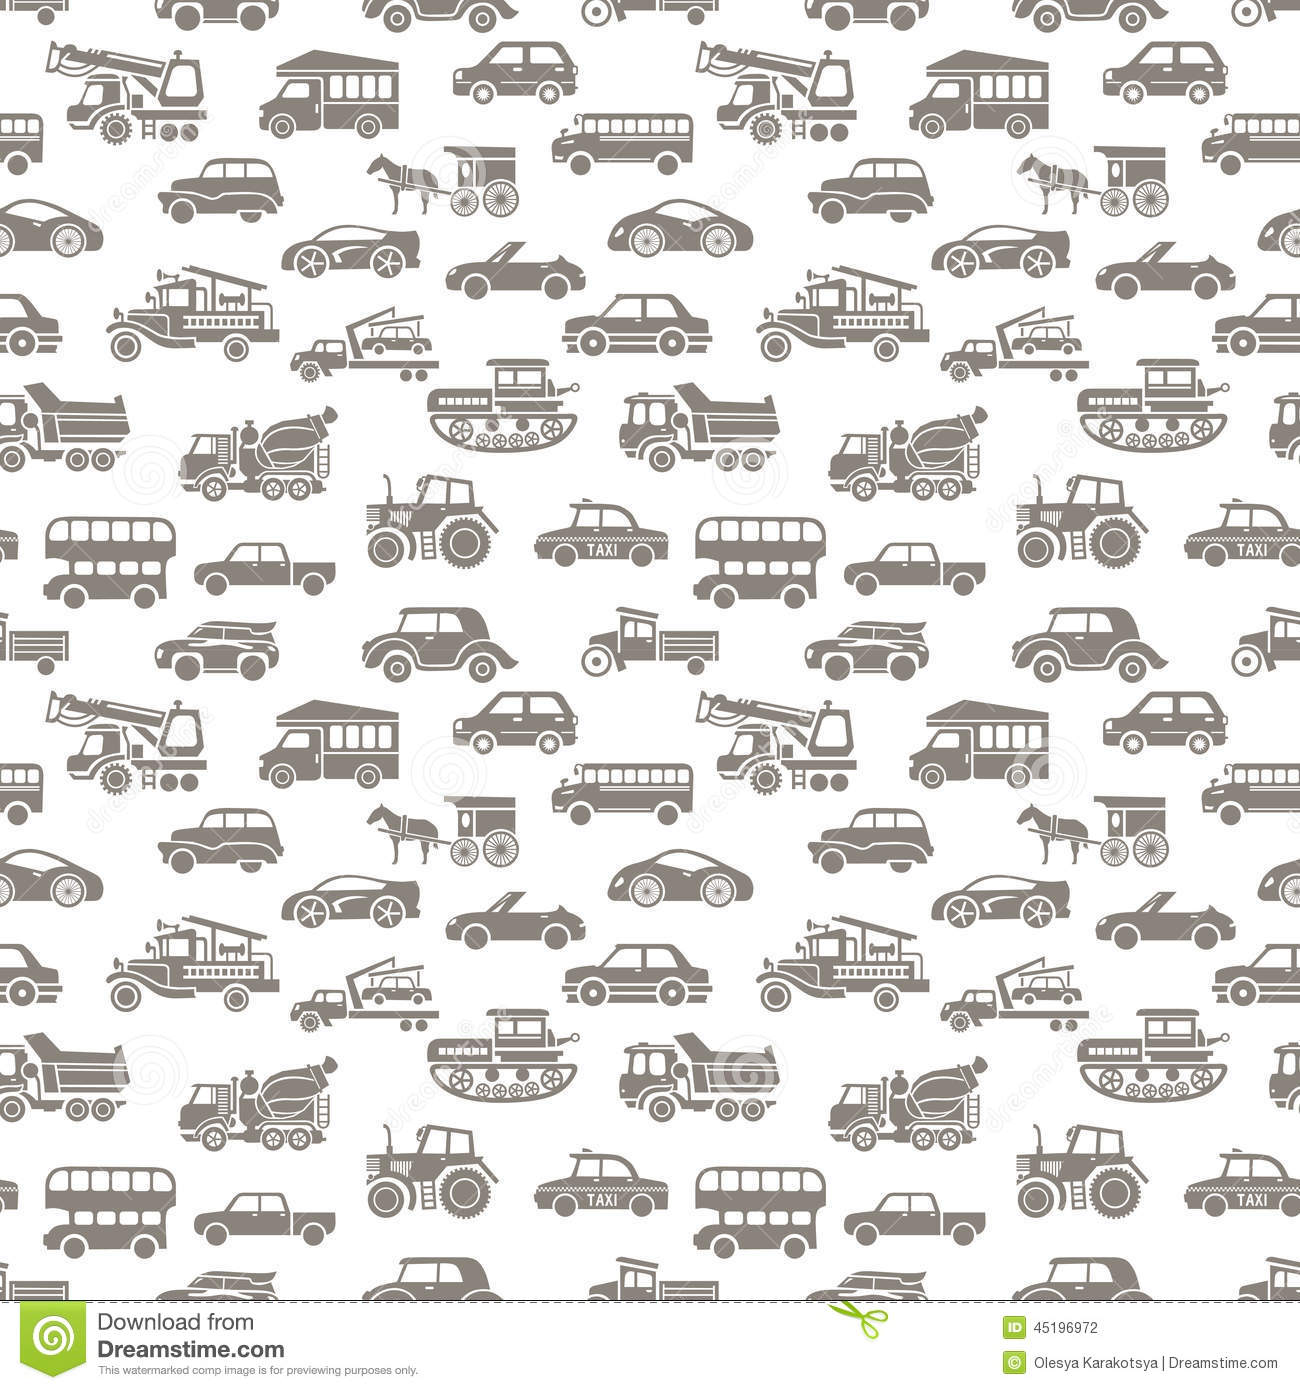 Stock Illustration Truck  pany Name Cargo Image40998608 additionally 517593603 together with Stock Illustration Vector Seamless Car Pattern Symbol Traffic Design Illustration Image45196972 further Autonomous car driverless driving lidar self vehicle icon also 122191531371. on vehicle illustration